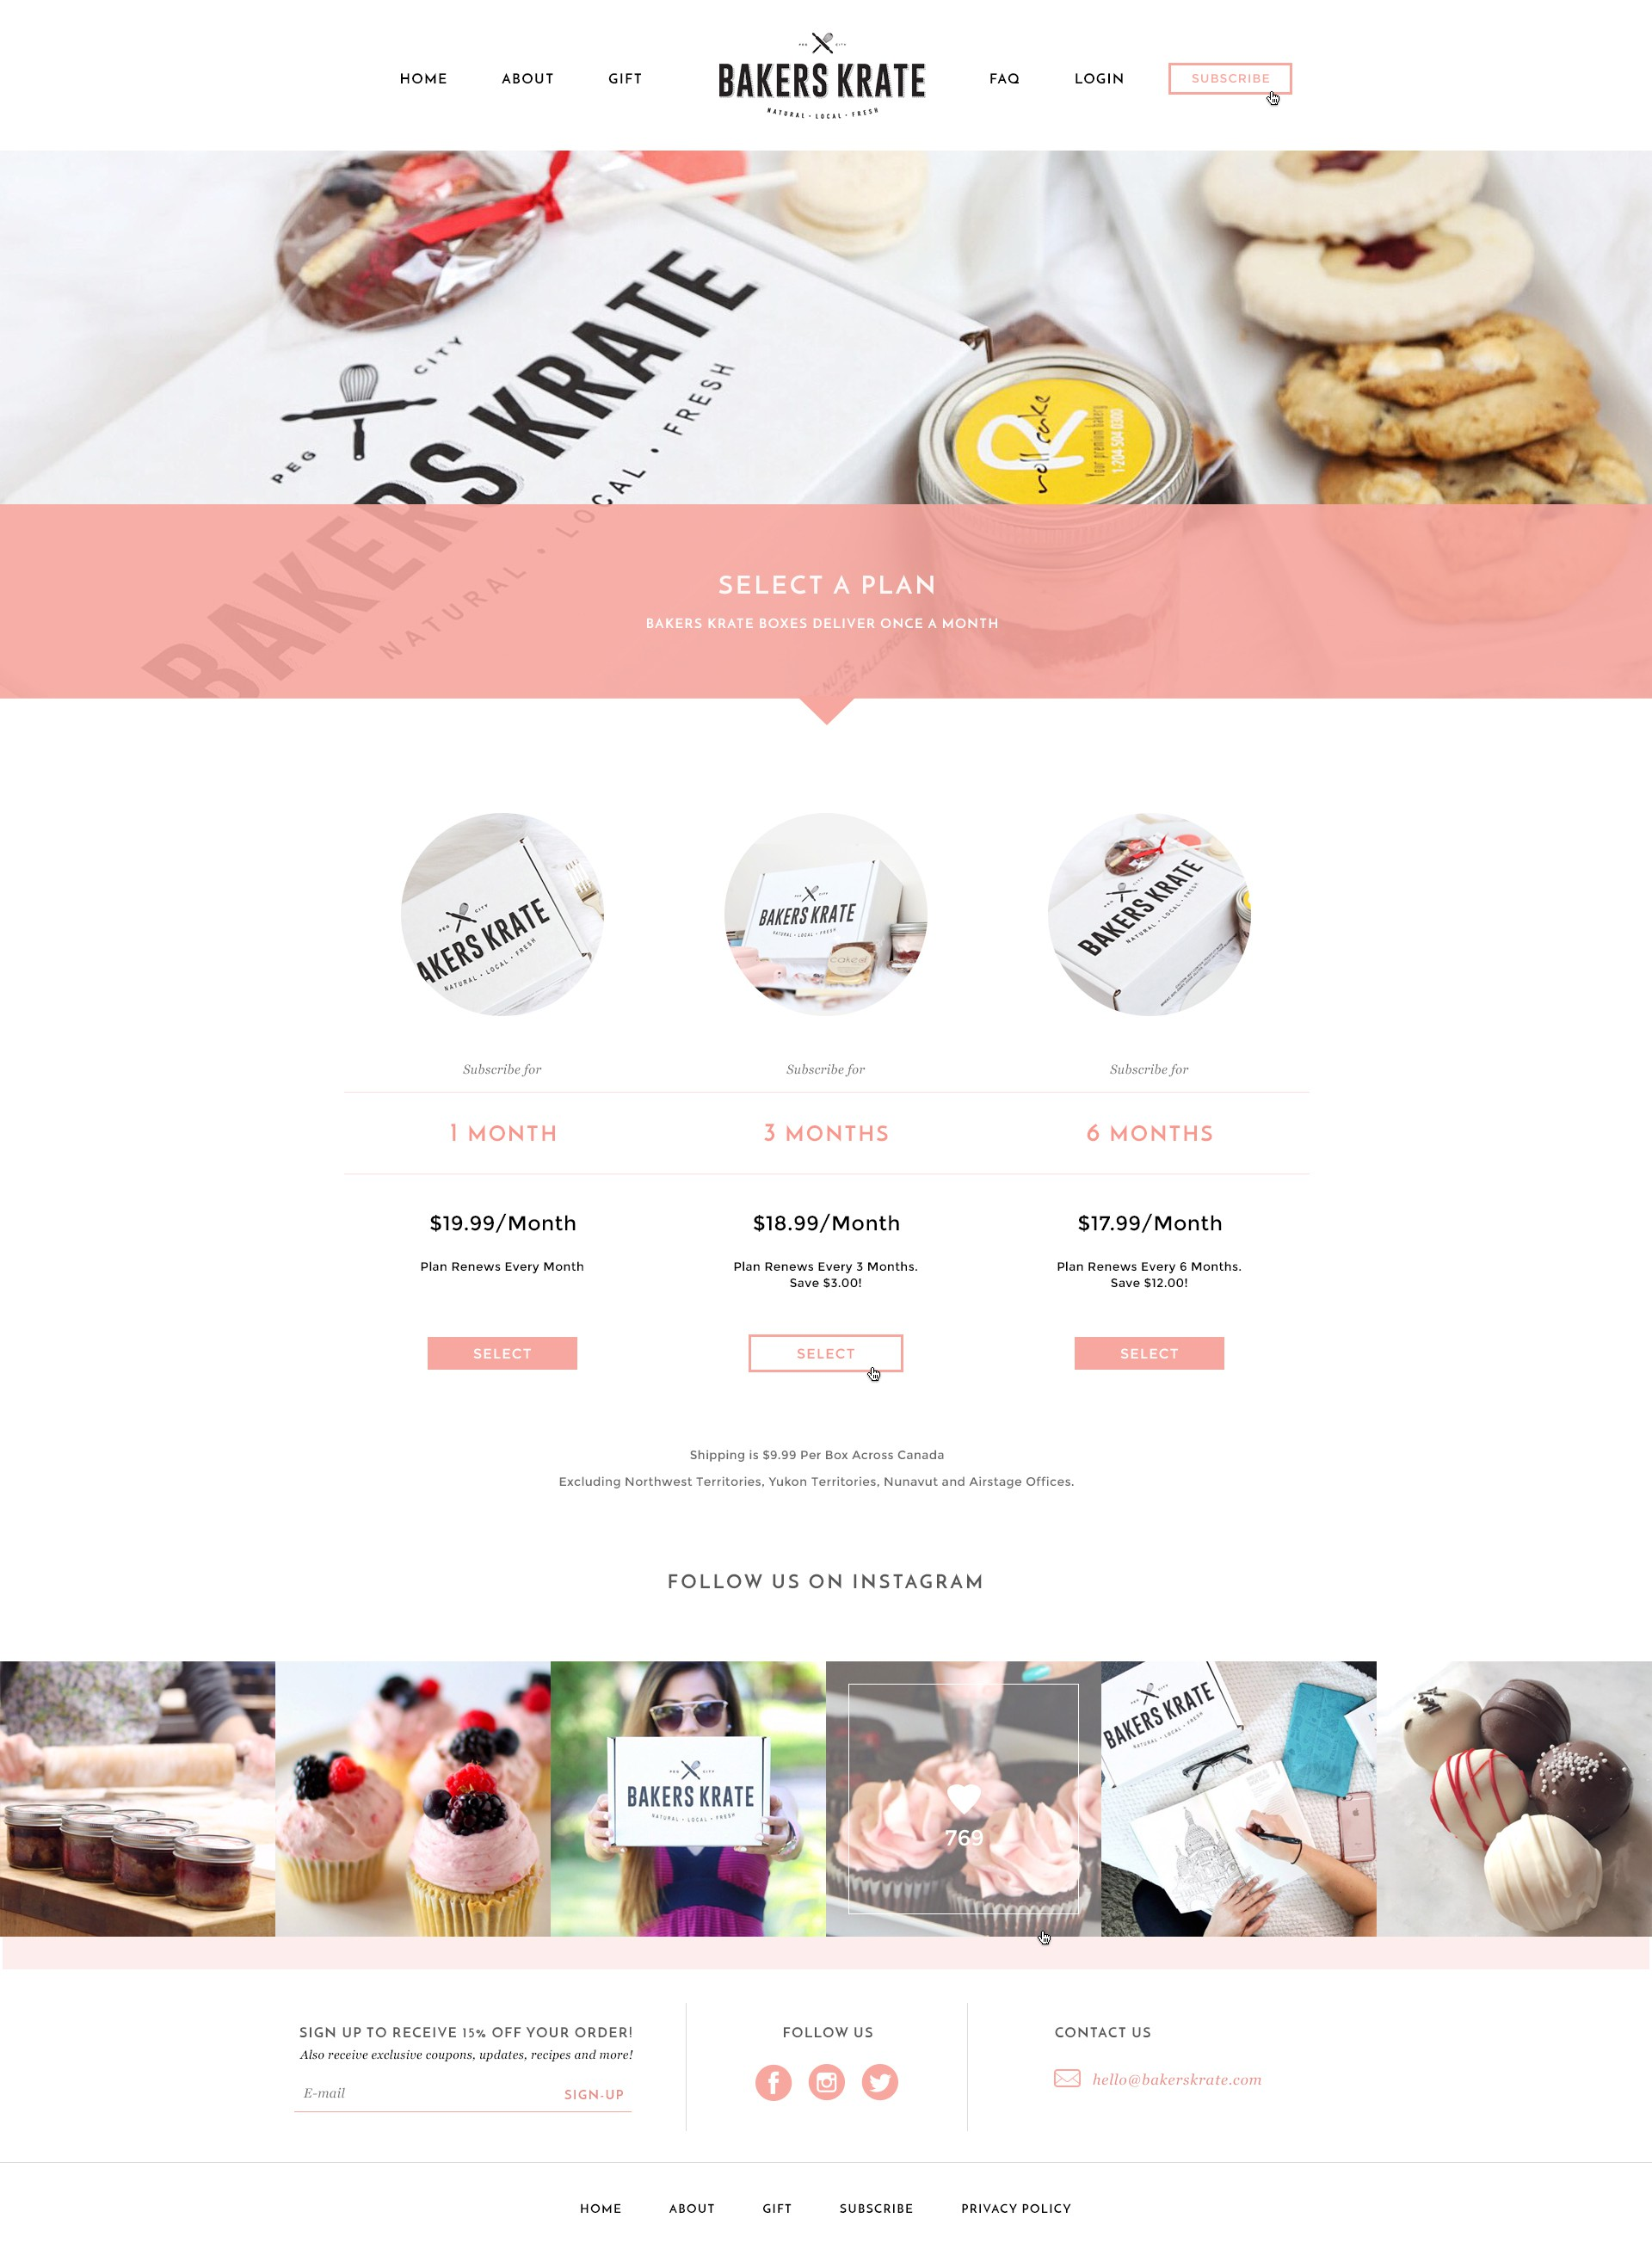 Create a Classy, Sophisticated Web Design for a Delicious Online Bake Shop for Bakers Krate!